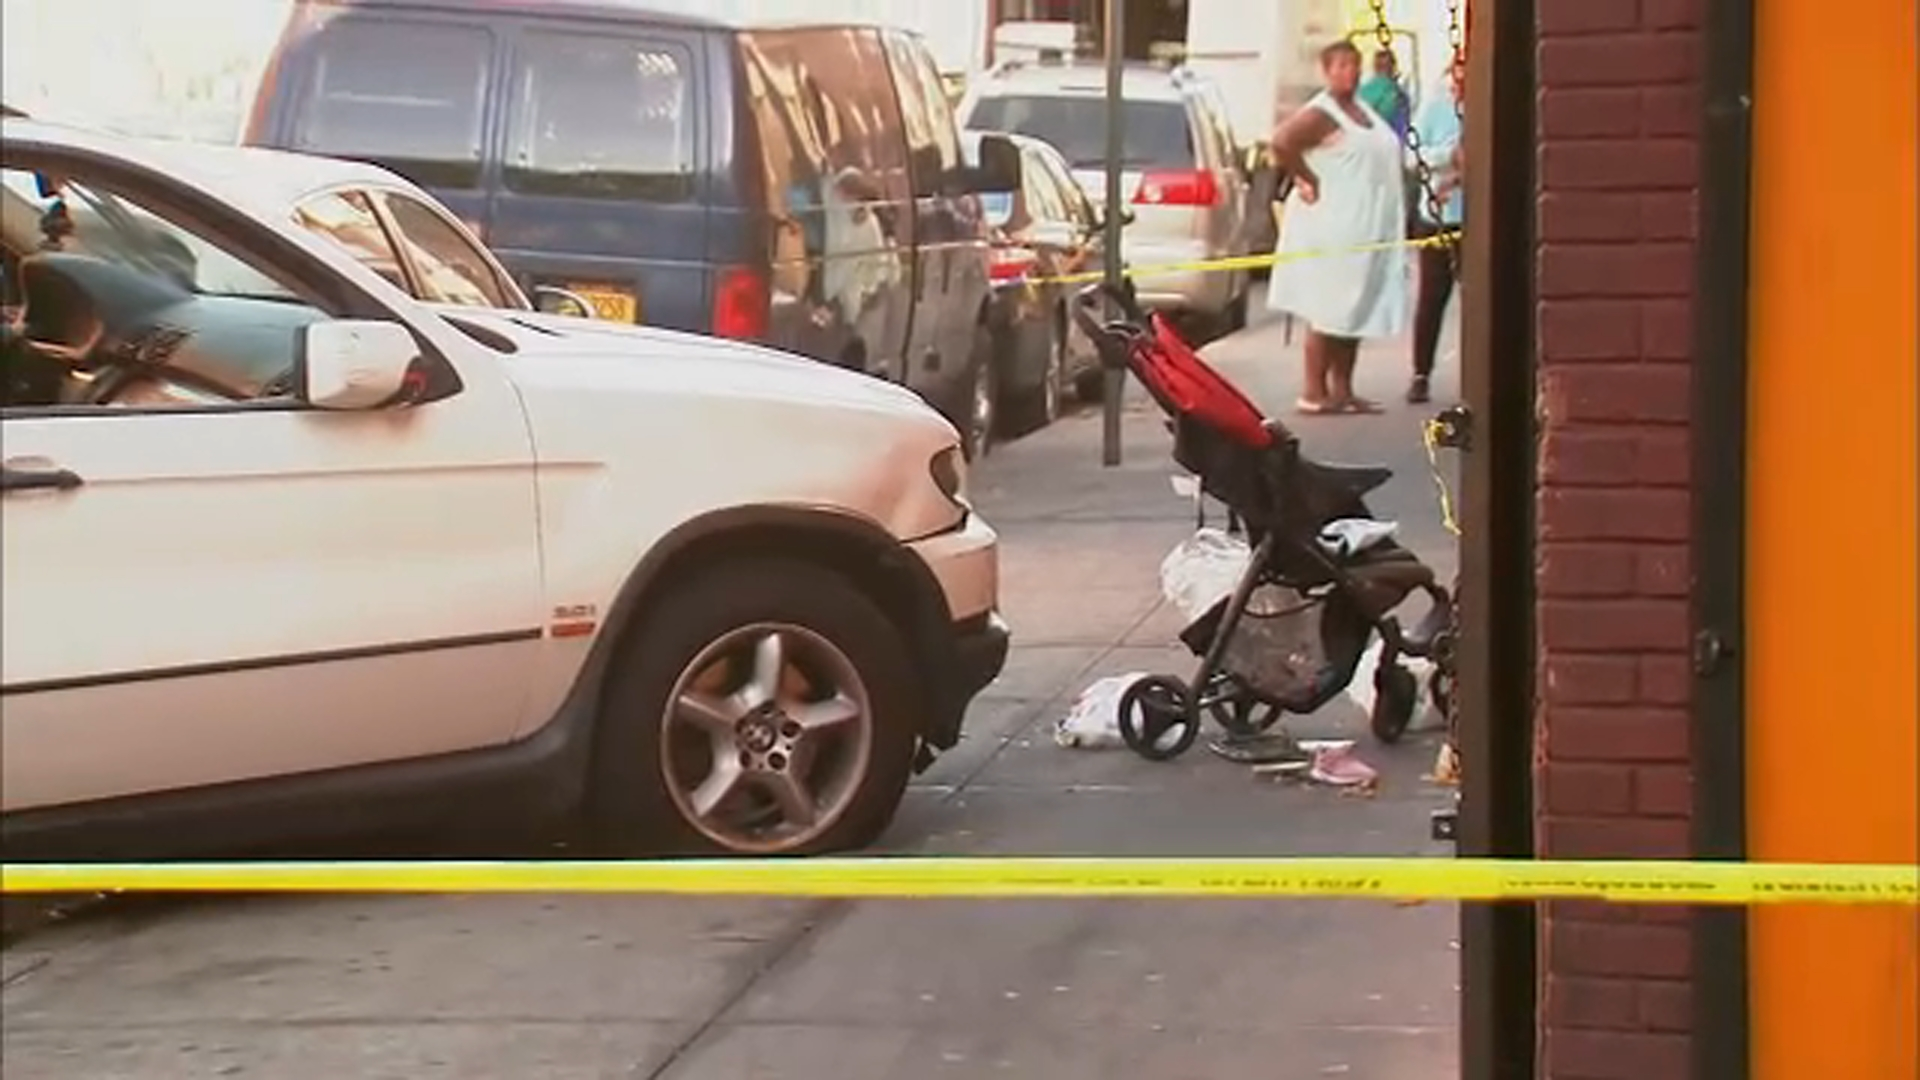 1-year-old dies after car jumps curb, strikes stroller in the Bronx; Driver in custody